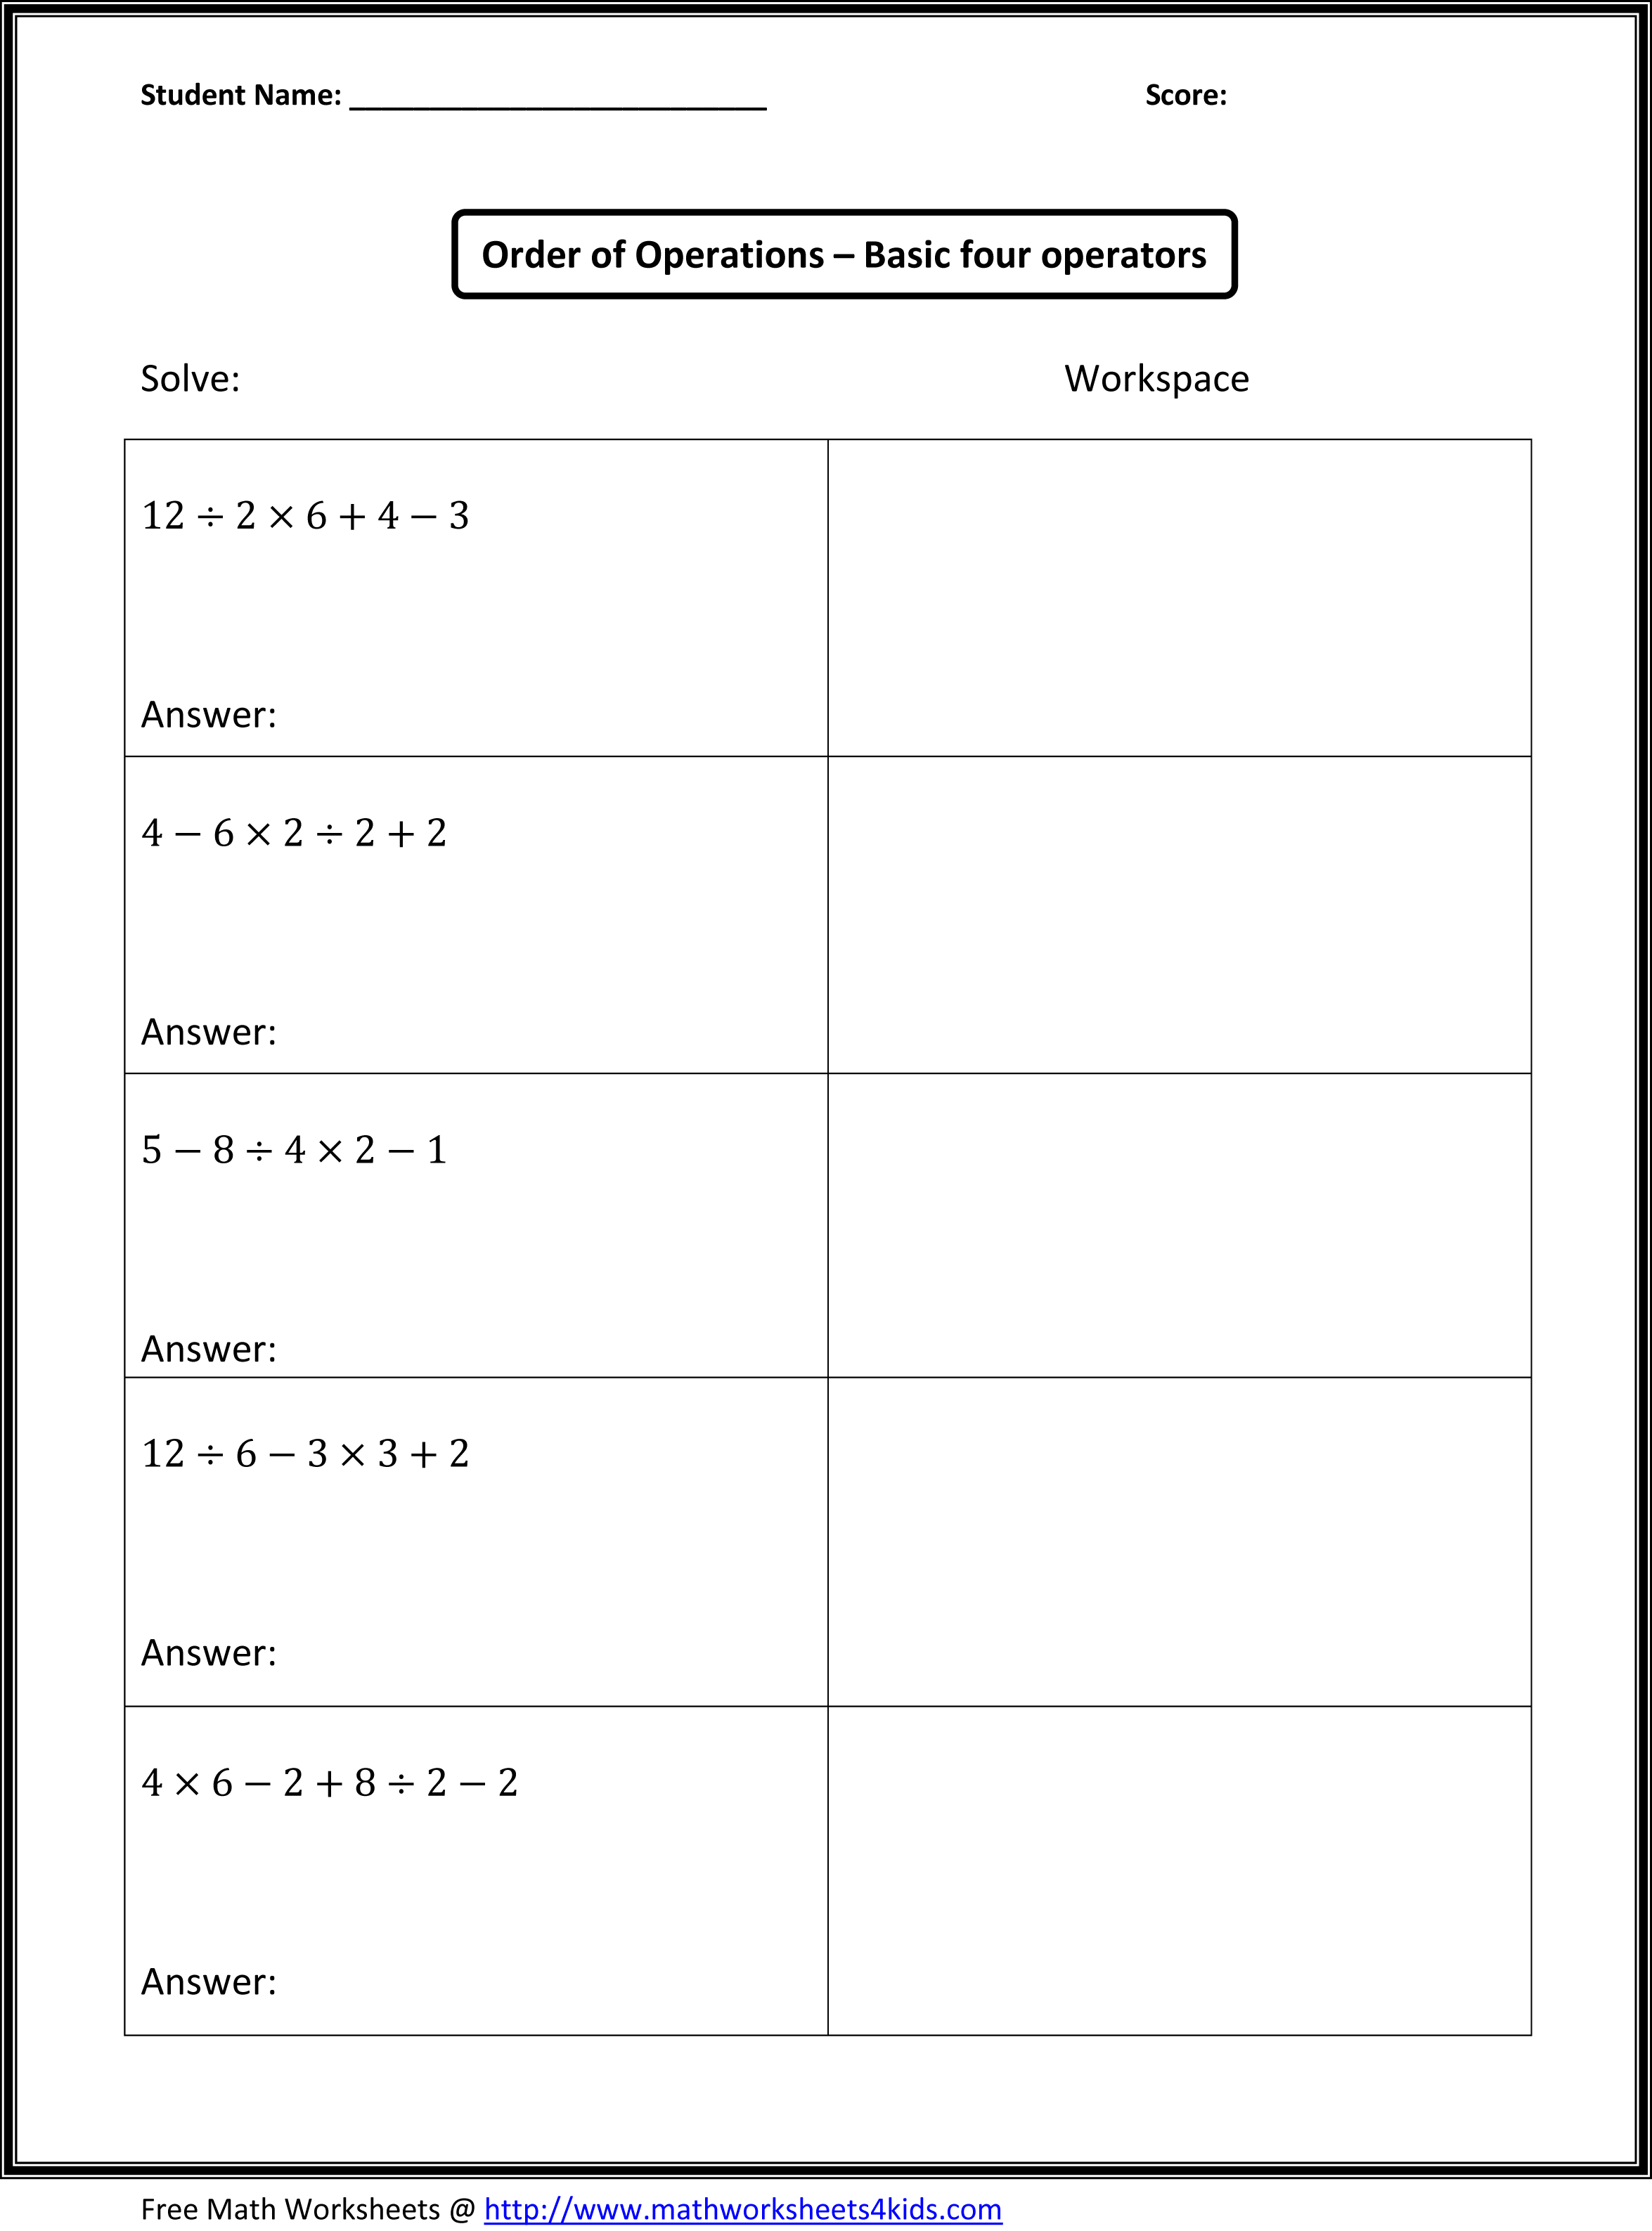 17 Best Images Of 5th Grade Math Word Problems Printable